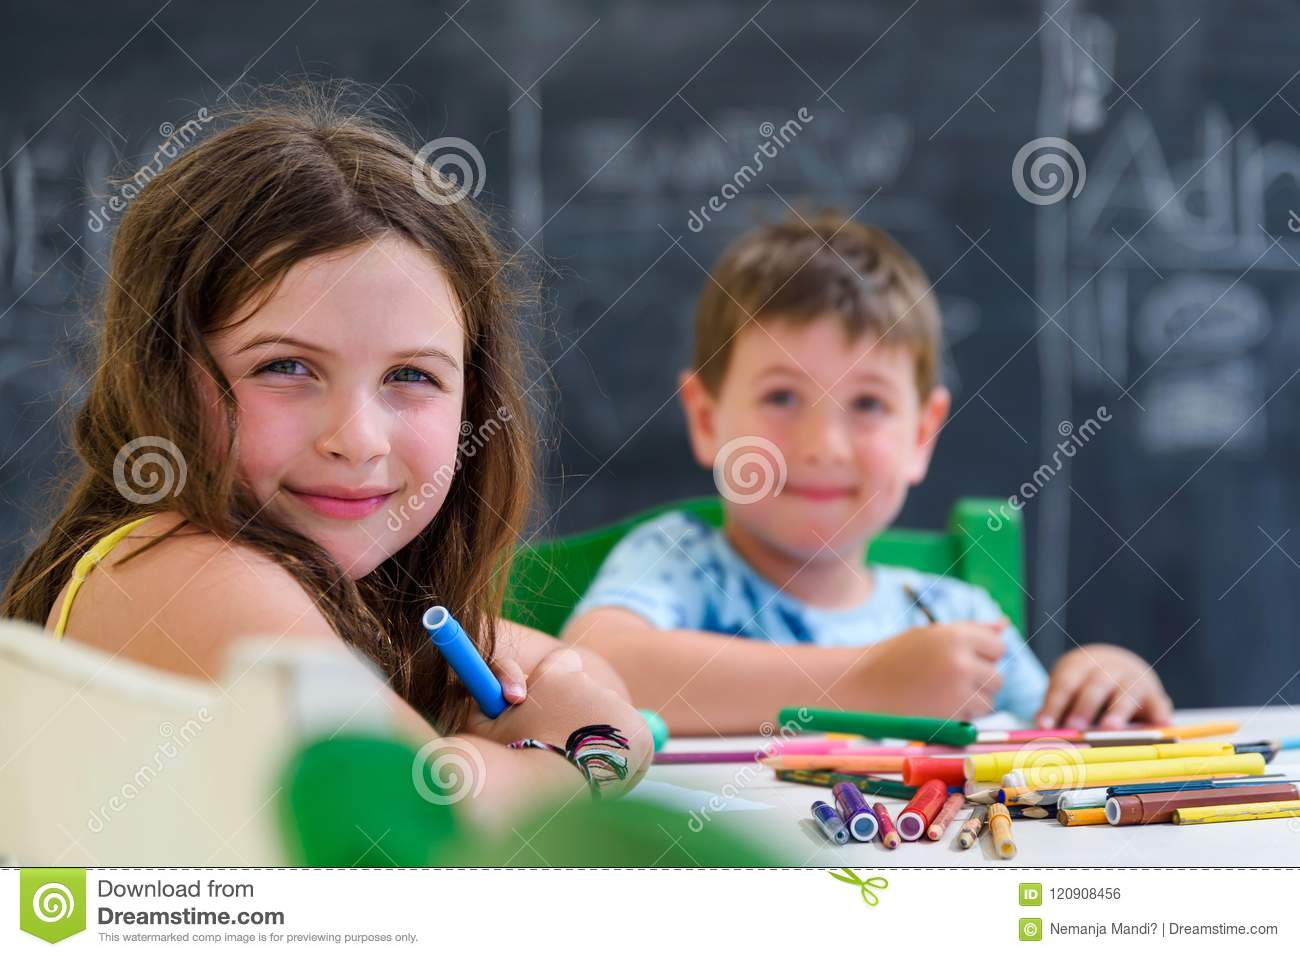 Cute little girl and boy drawing and painting with colorful markers pens at kindergarten. Creative activities kids club